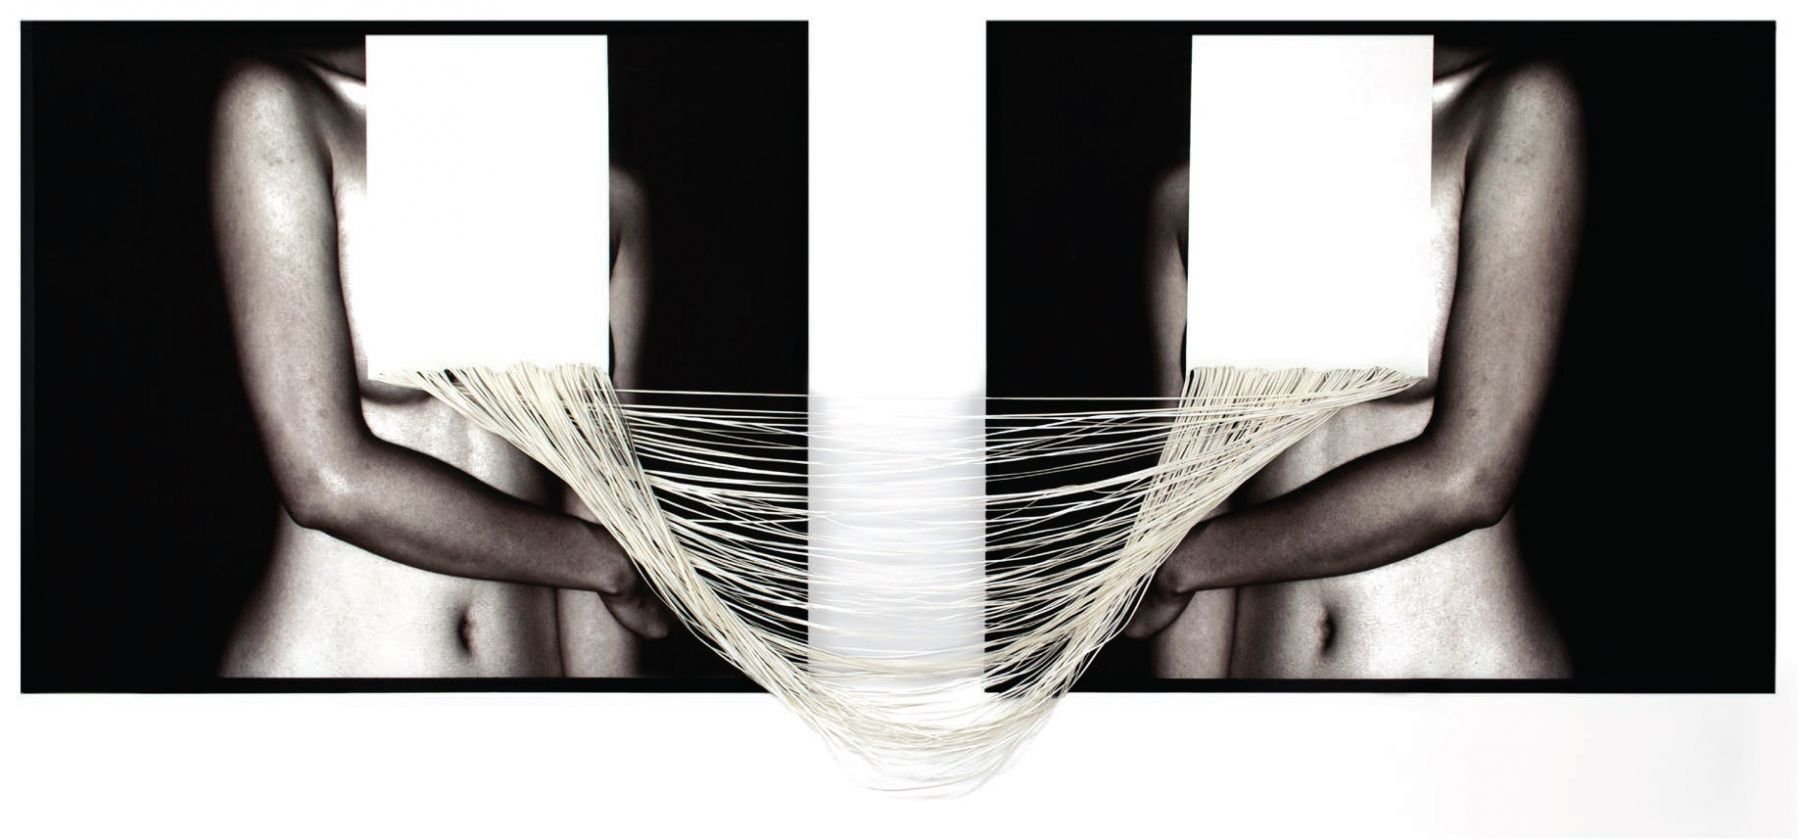 Tension, 2015, c-type print and hand cut canvas, 36.5 x 97.1 inches/92.7 x 246.7 cm